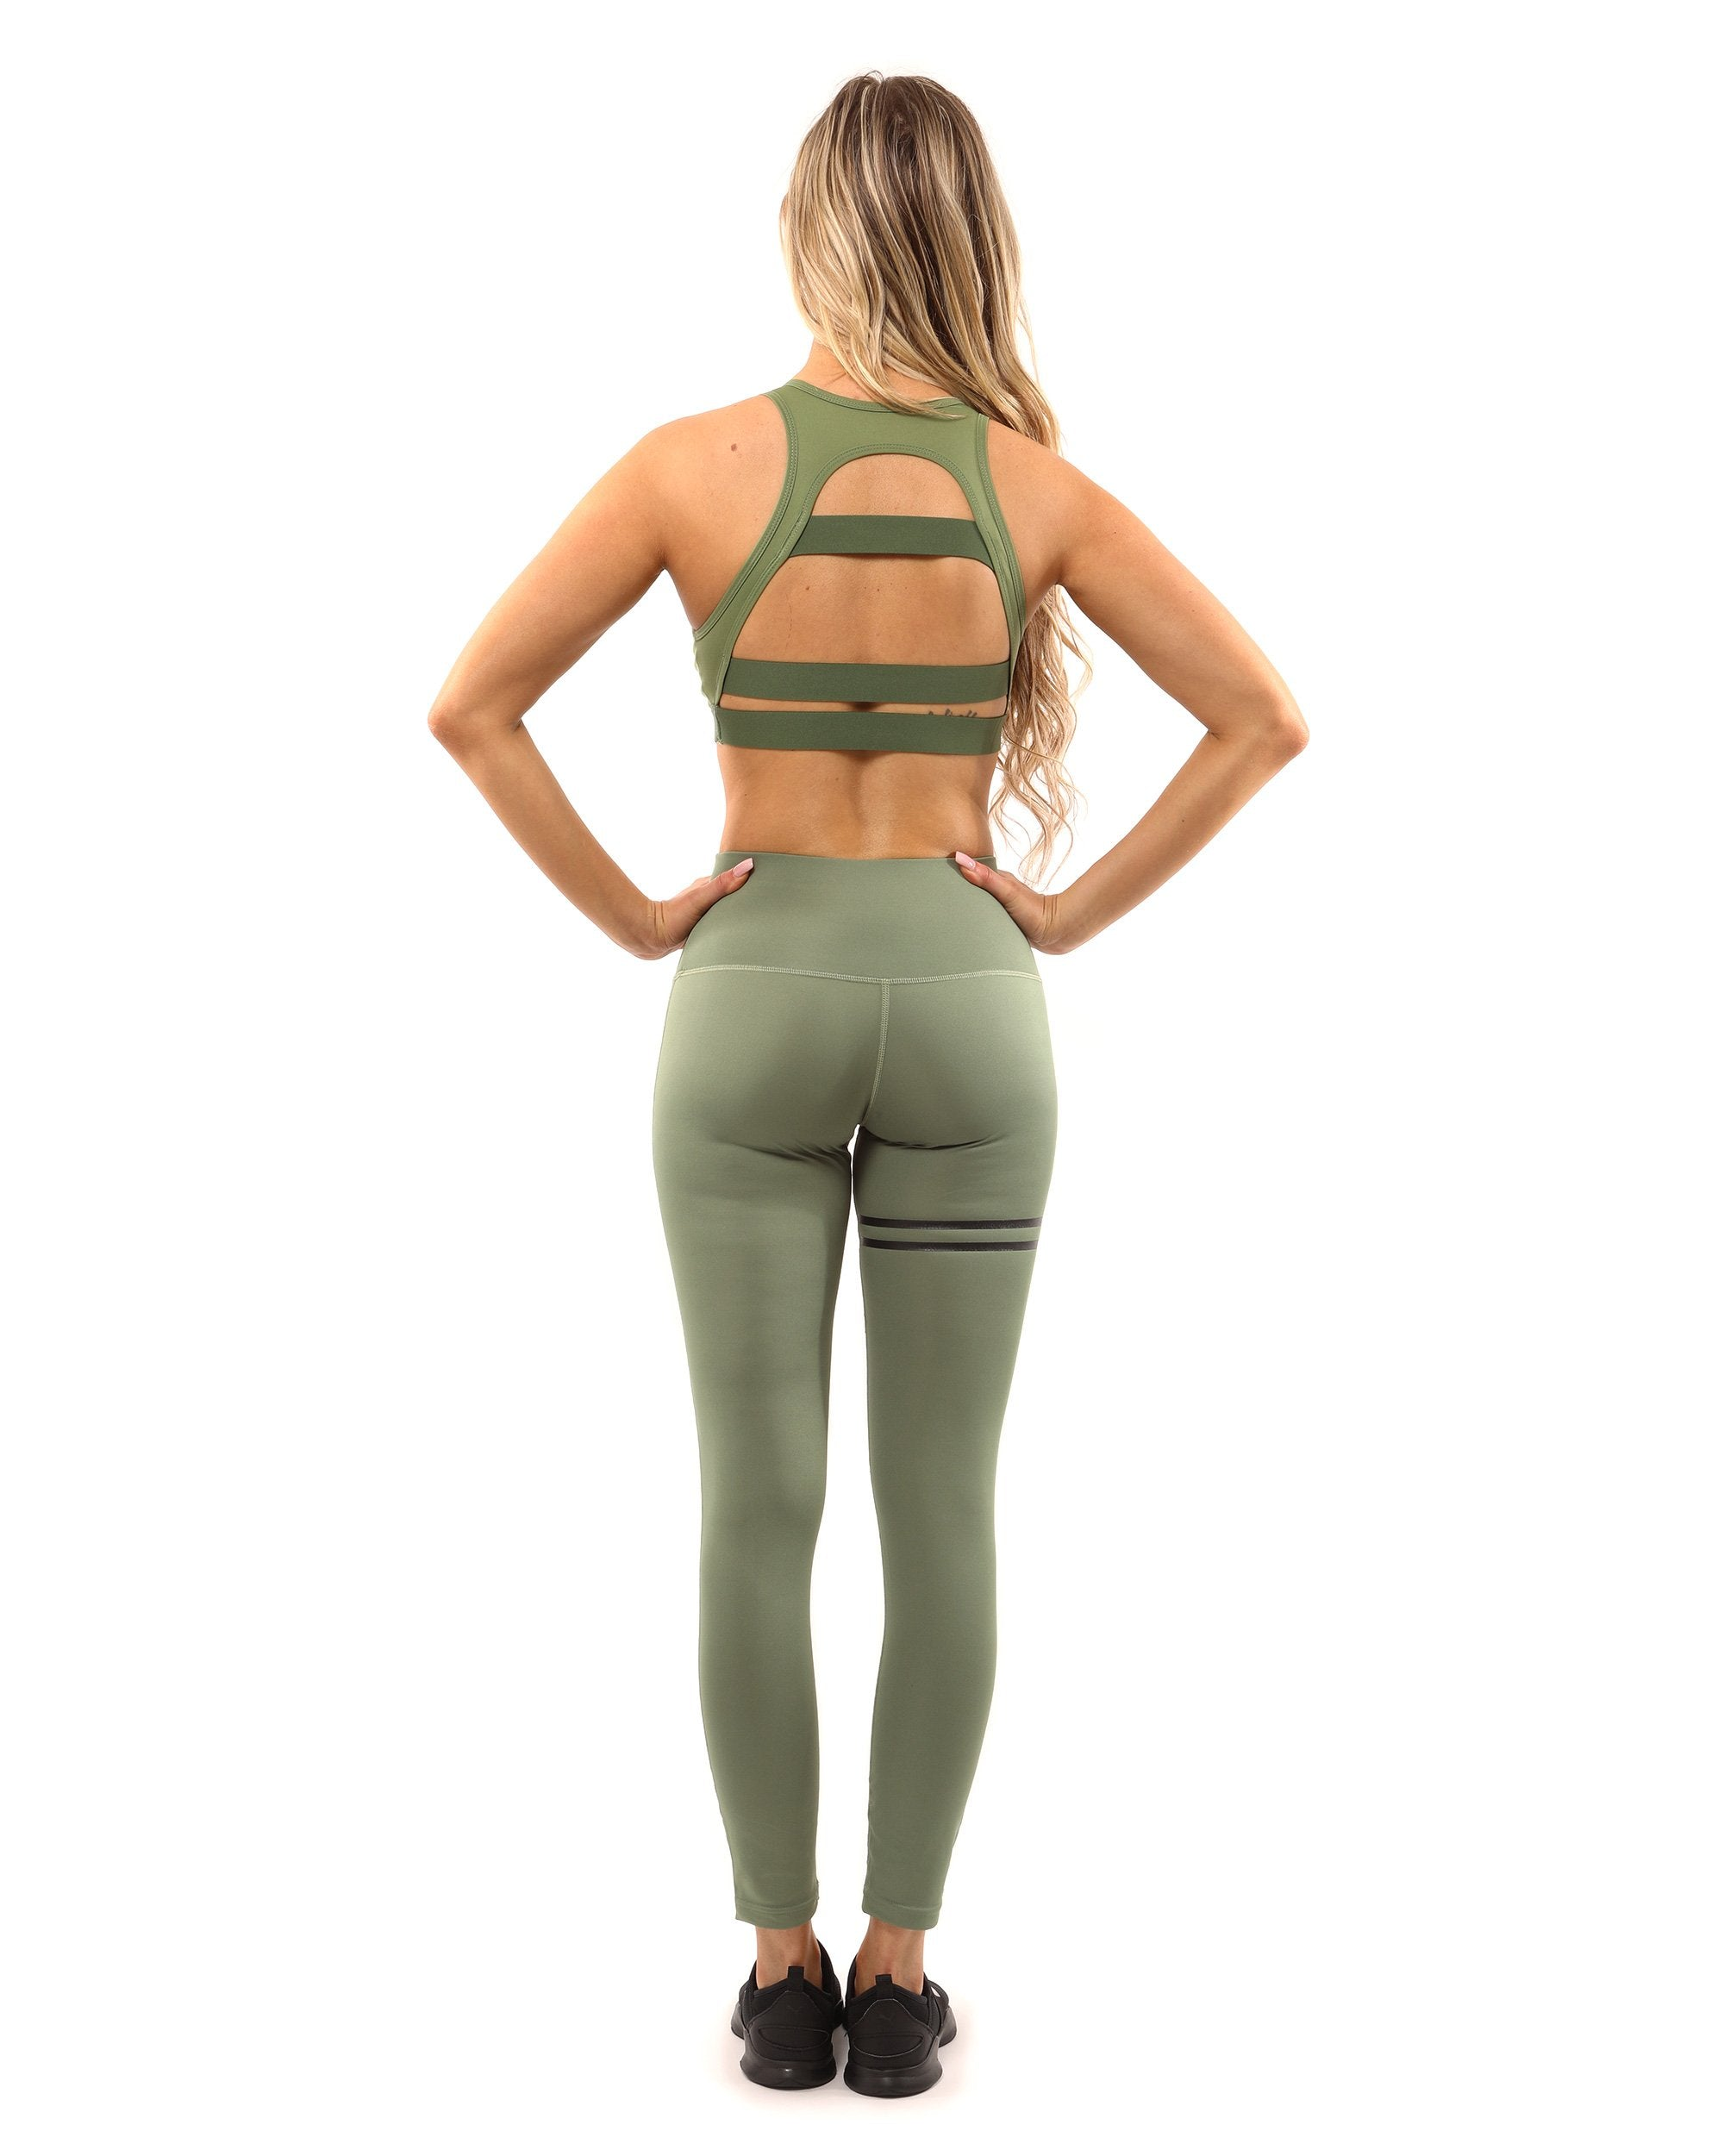 Huntington Leggings - Olive Green - olivias-room-boutique